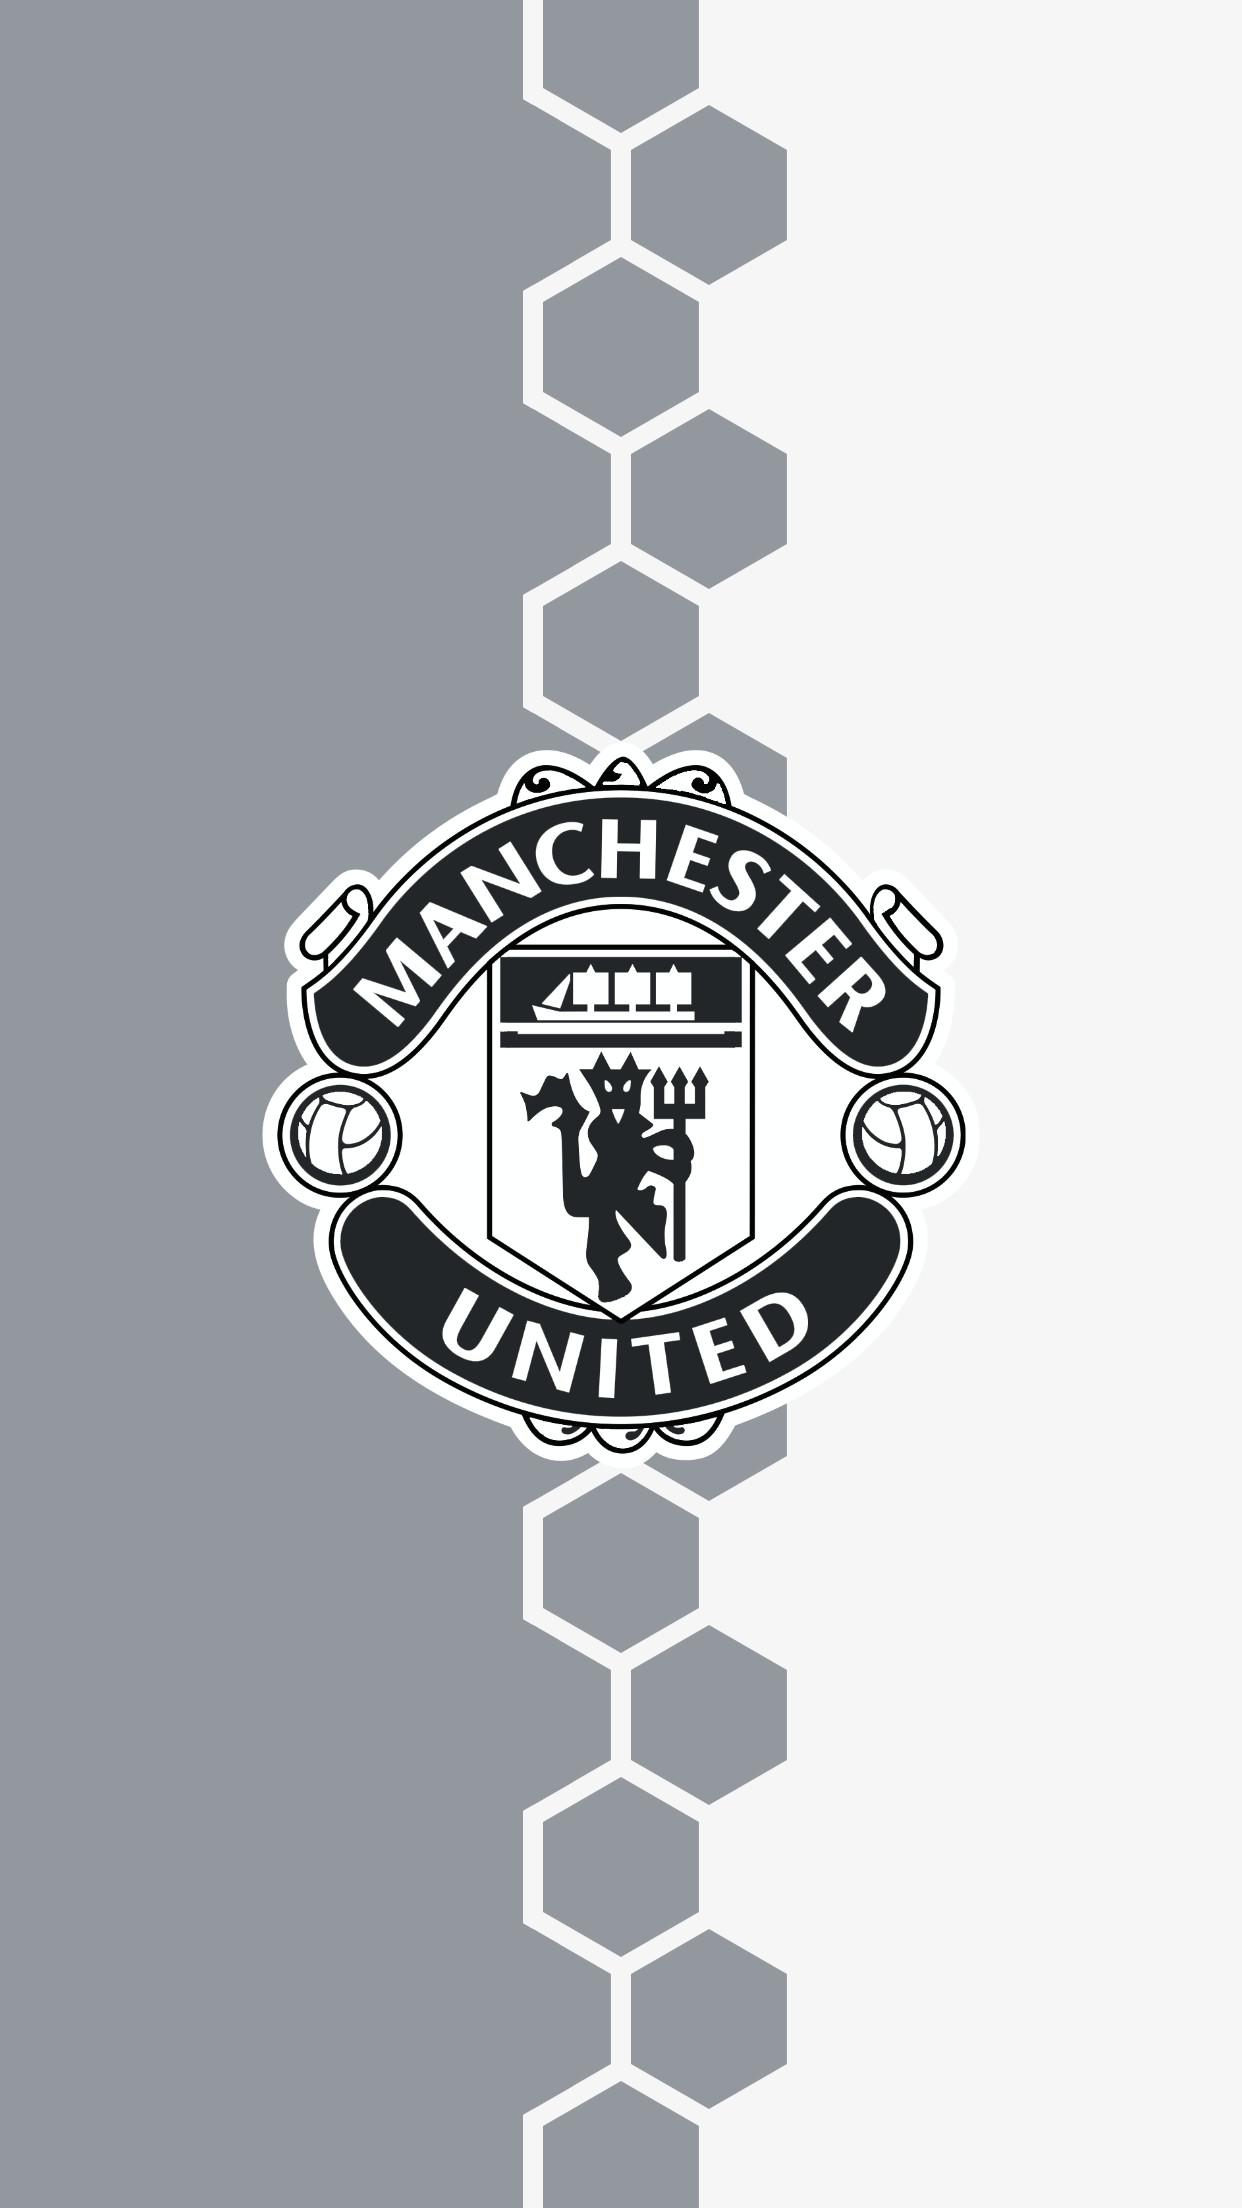 man utd wallpapers screensavers on avante biz